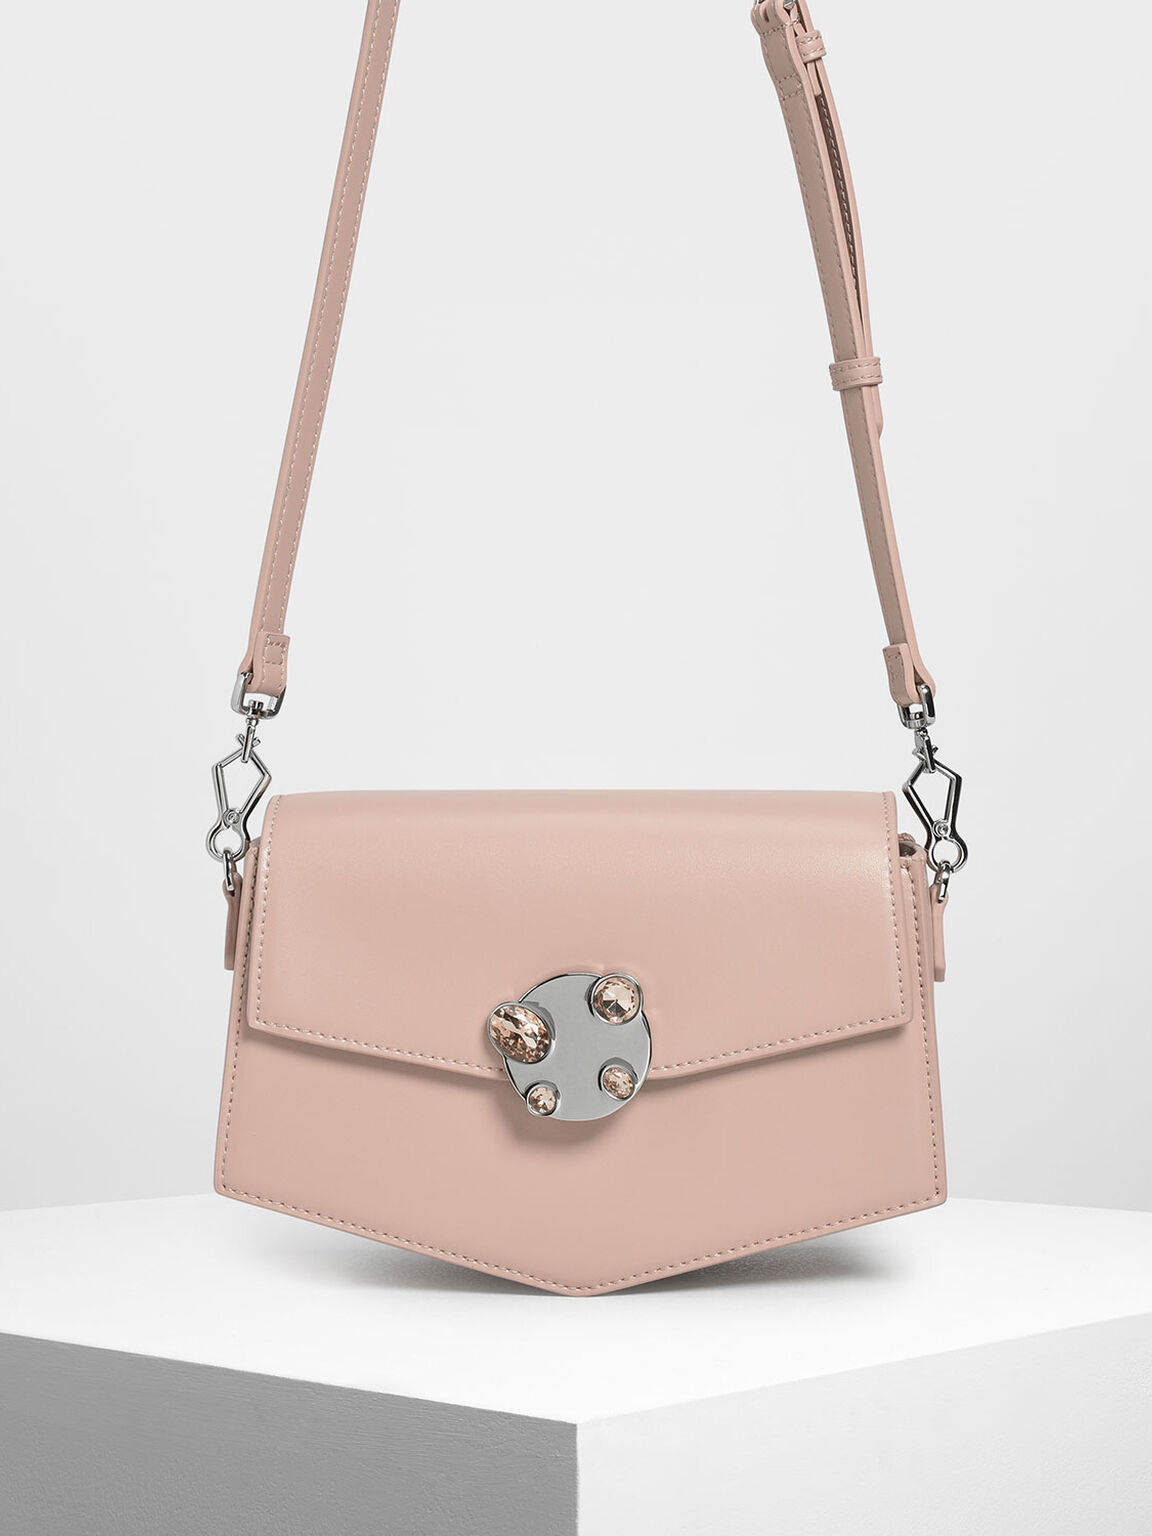 Embellished Push Lock Bag, Nude, hi-res